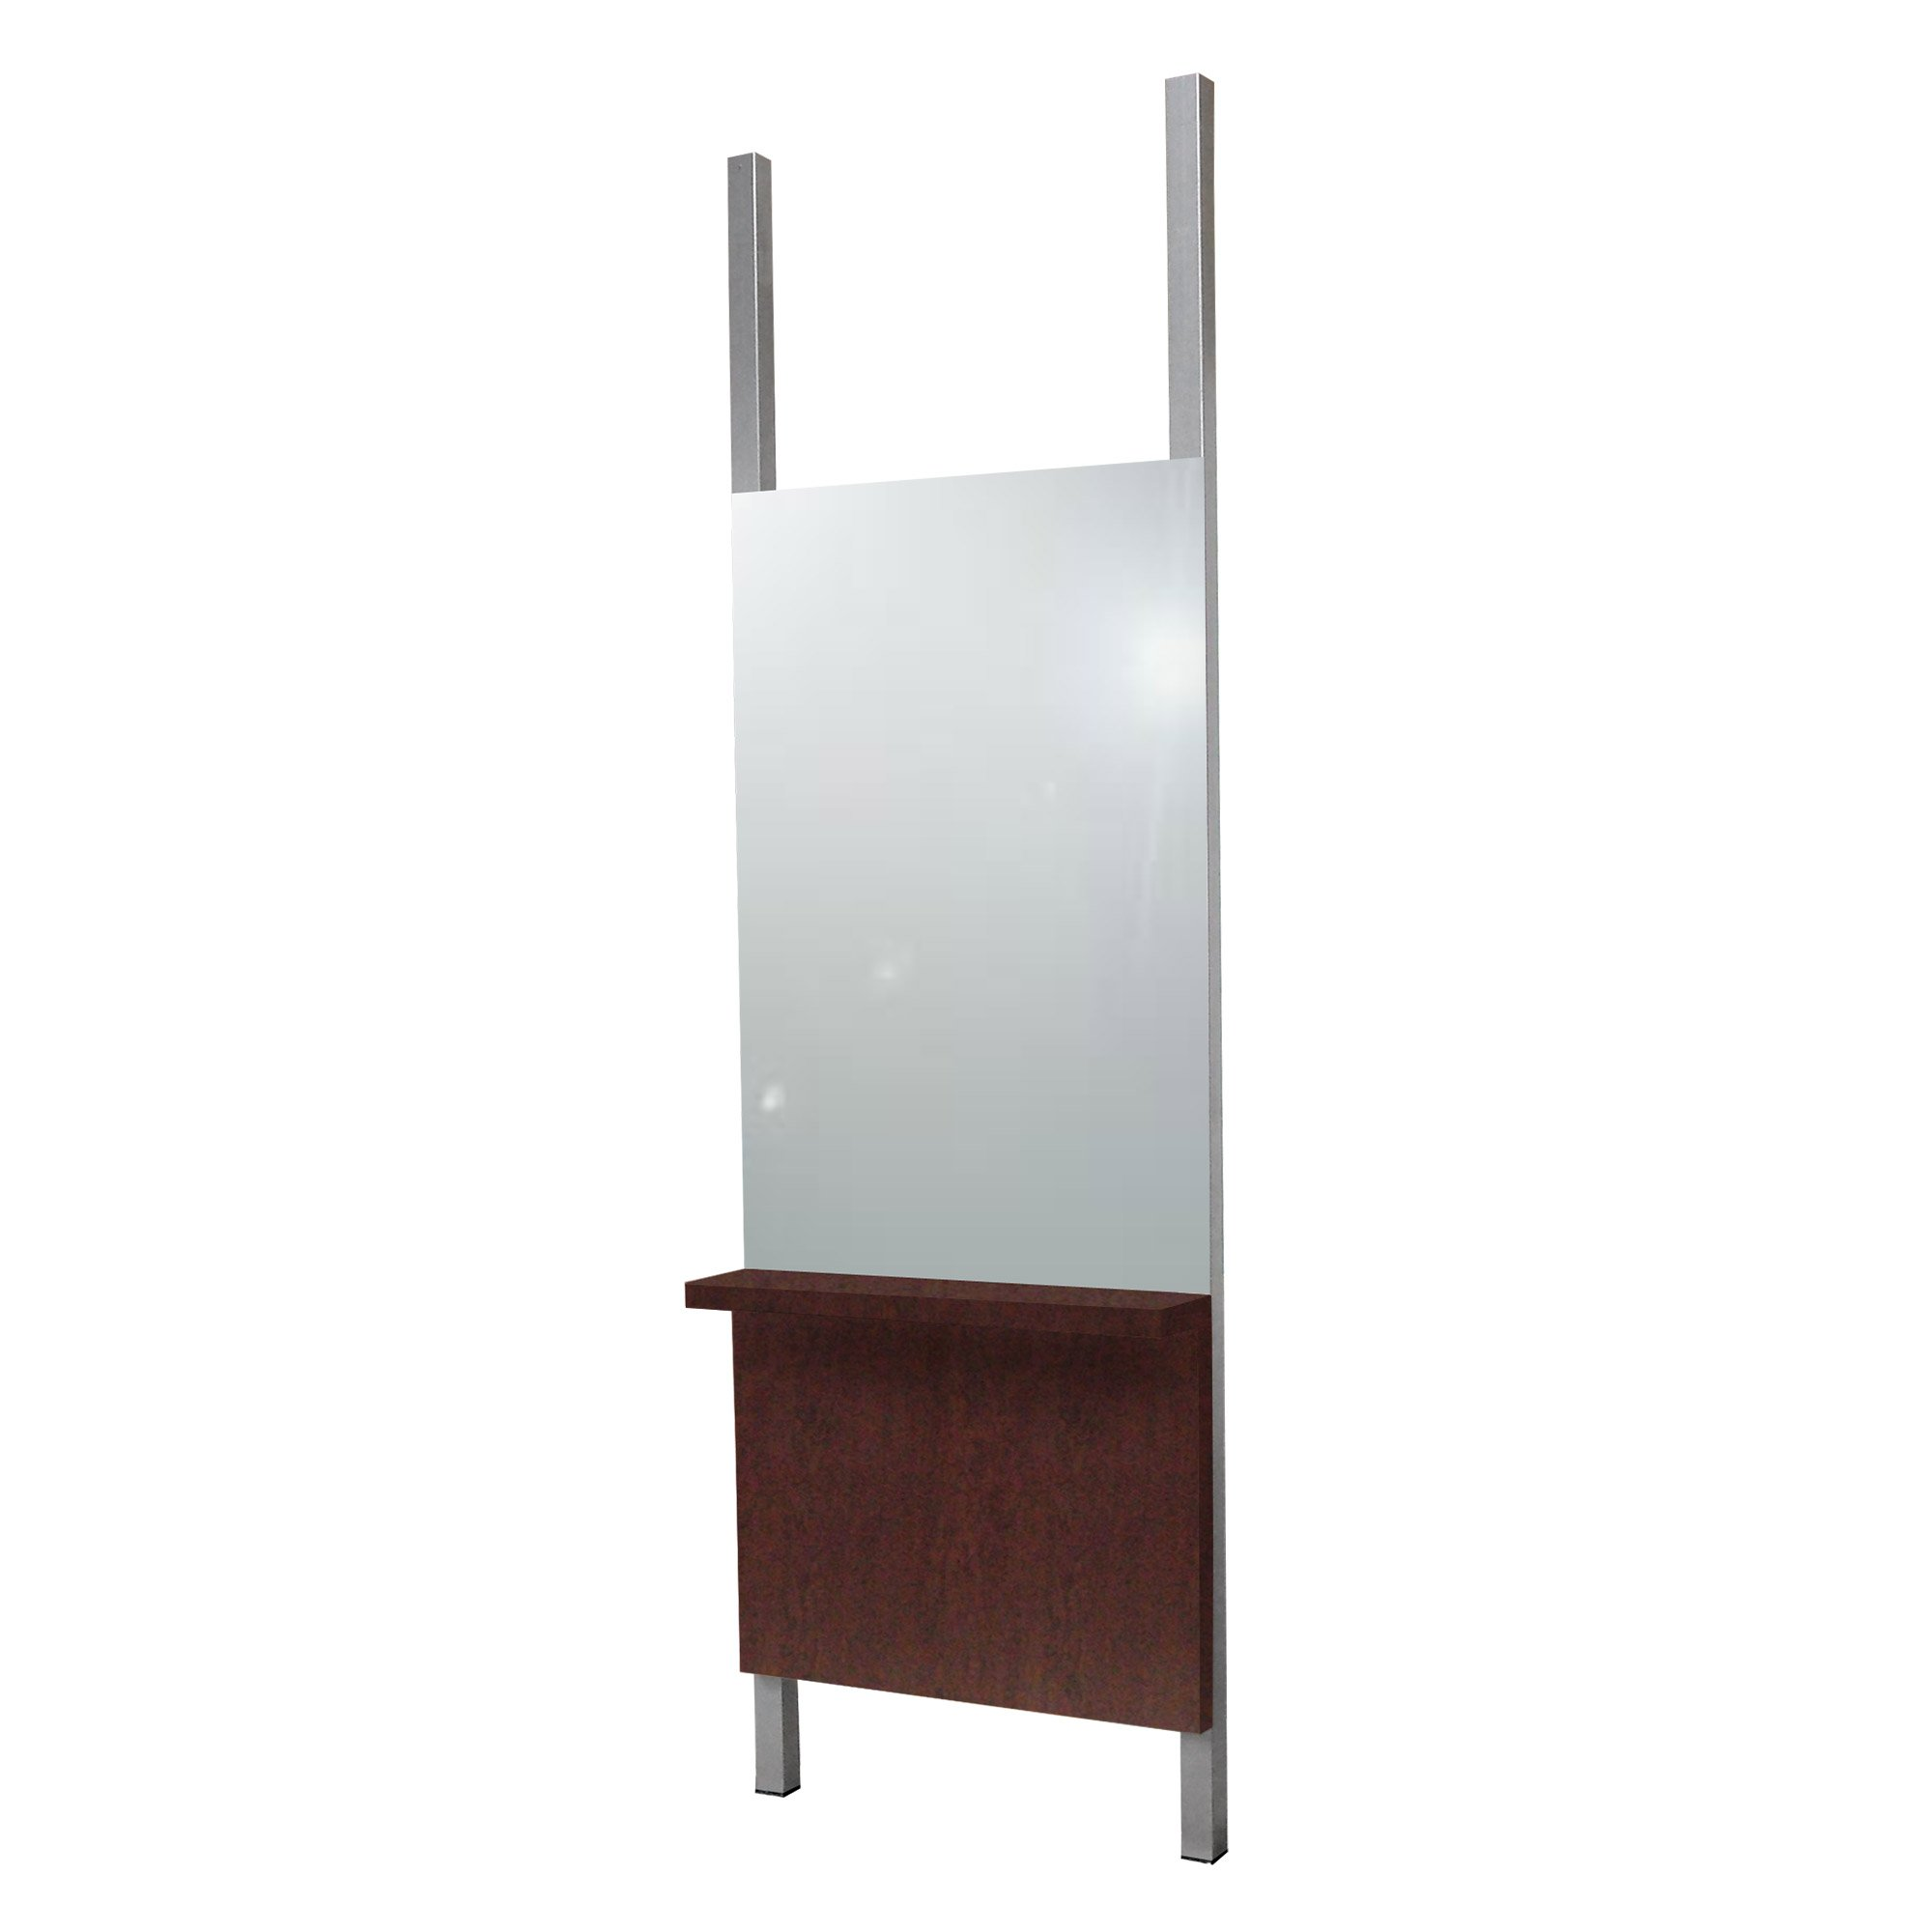 934 Amati Wall-Mounted Mirror